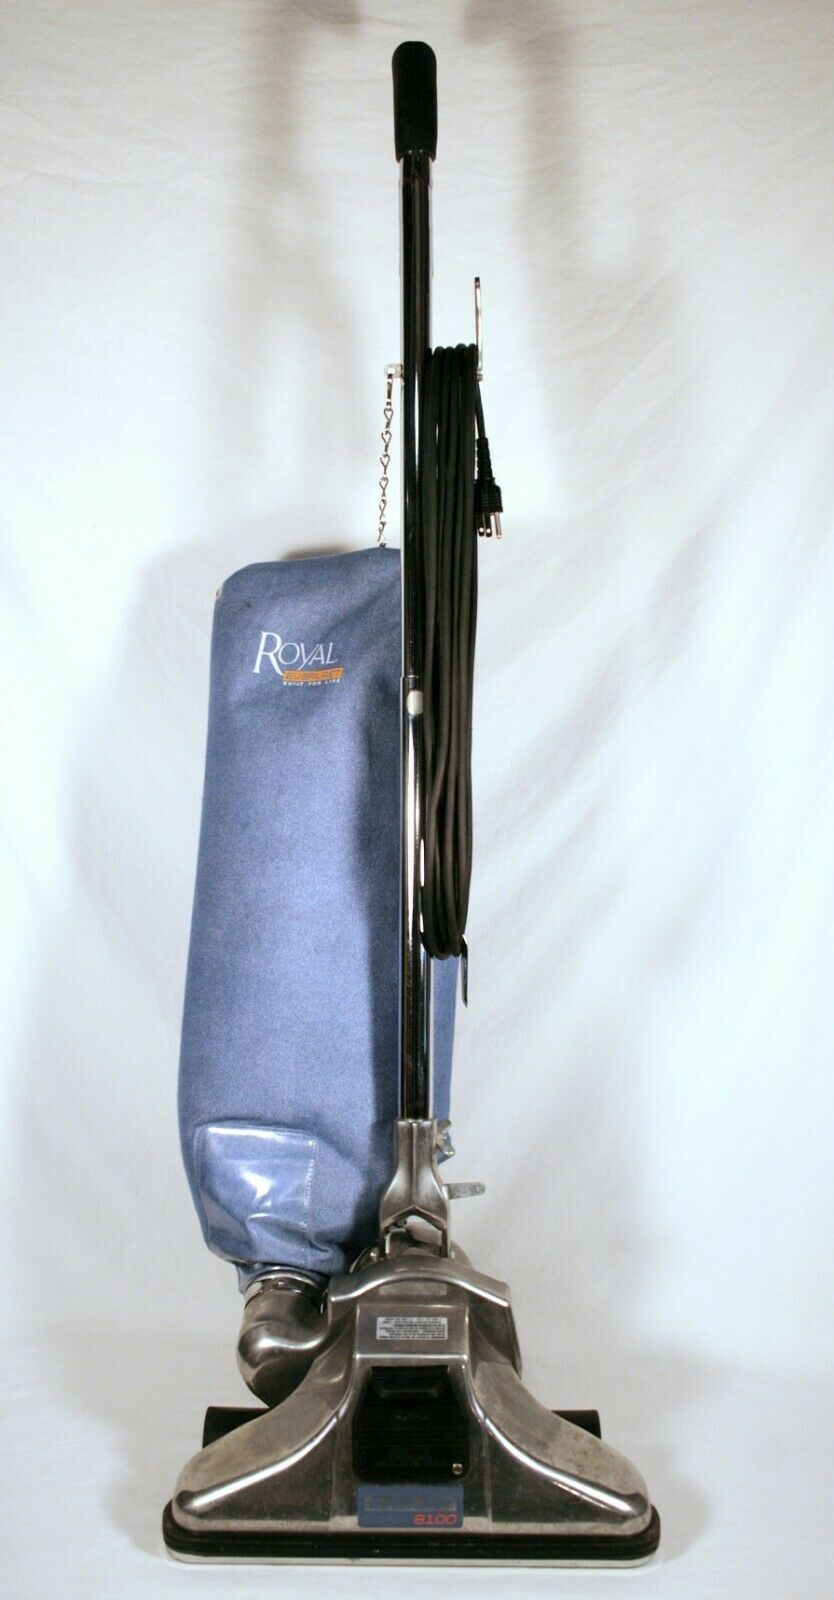 ROYAL Everlast 8100 Commercial Quality Upright Vacuum Cleaner + NEW Bag